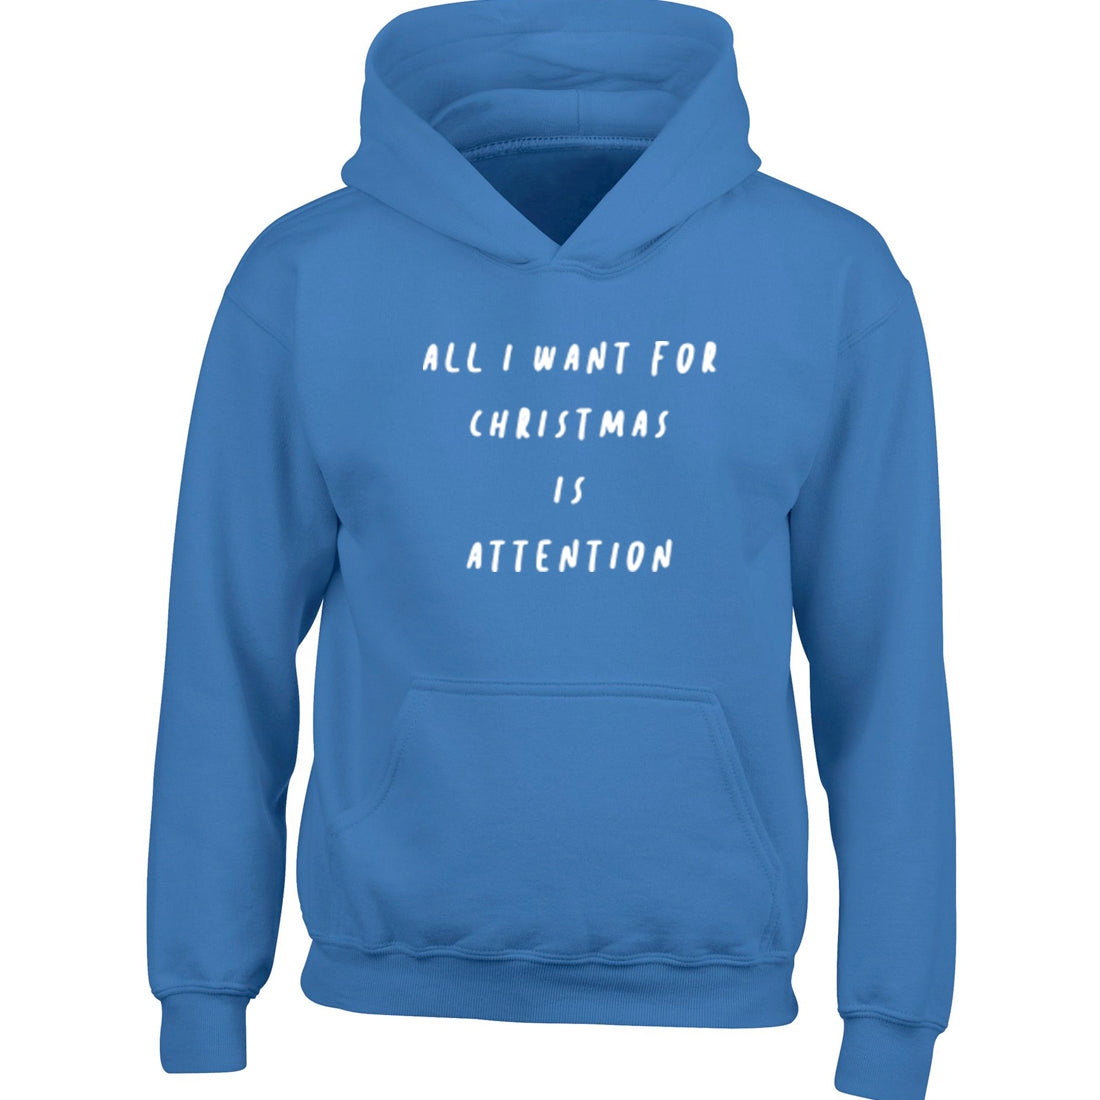 All I Want For Christmas Is Attention Childrens Ages 3/4-12/14 Unisex Hoodie K2468